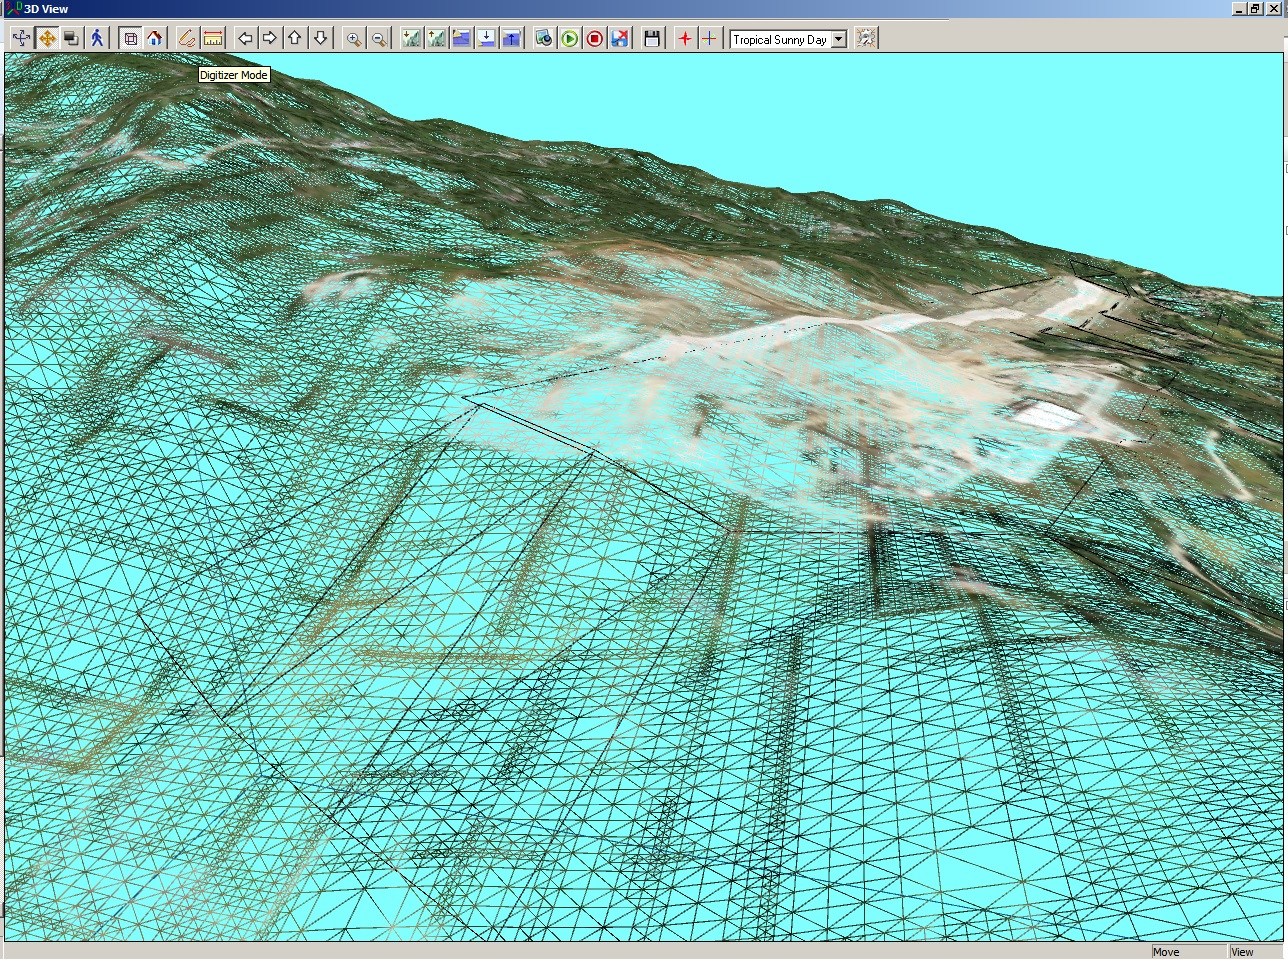 VEPY_ADEP4_KK_CVX_SHP_GM_3D_30M_GDEM_World_Imagery_WIREFRAME.jpg